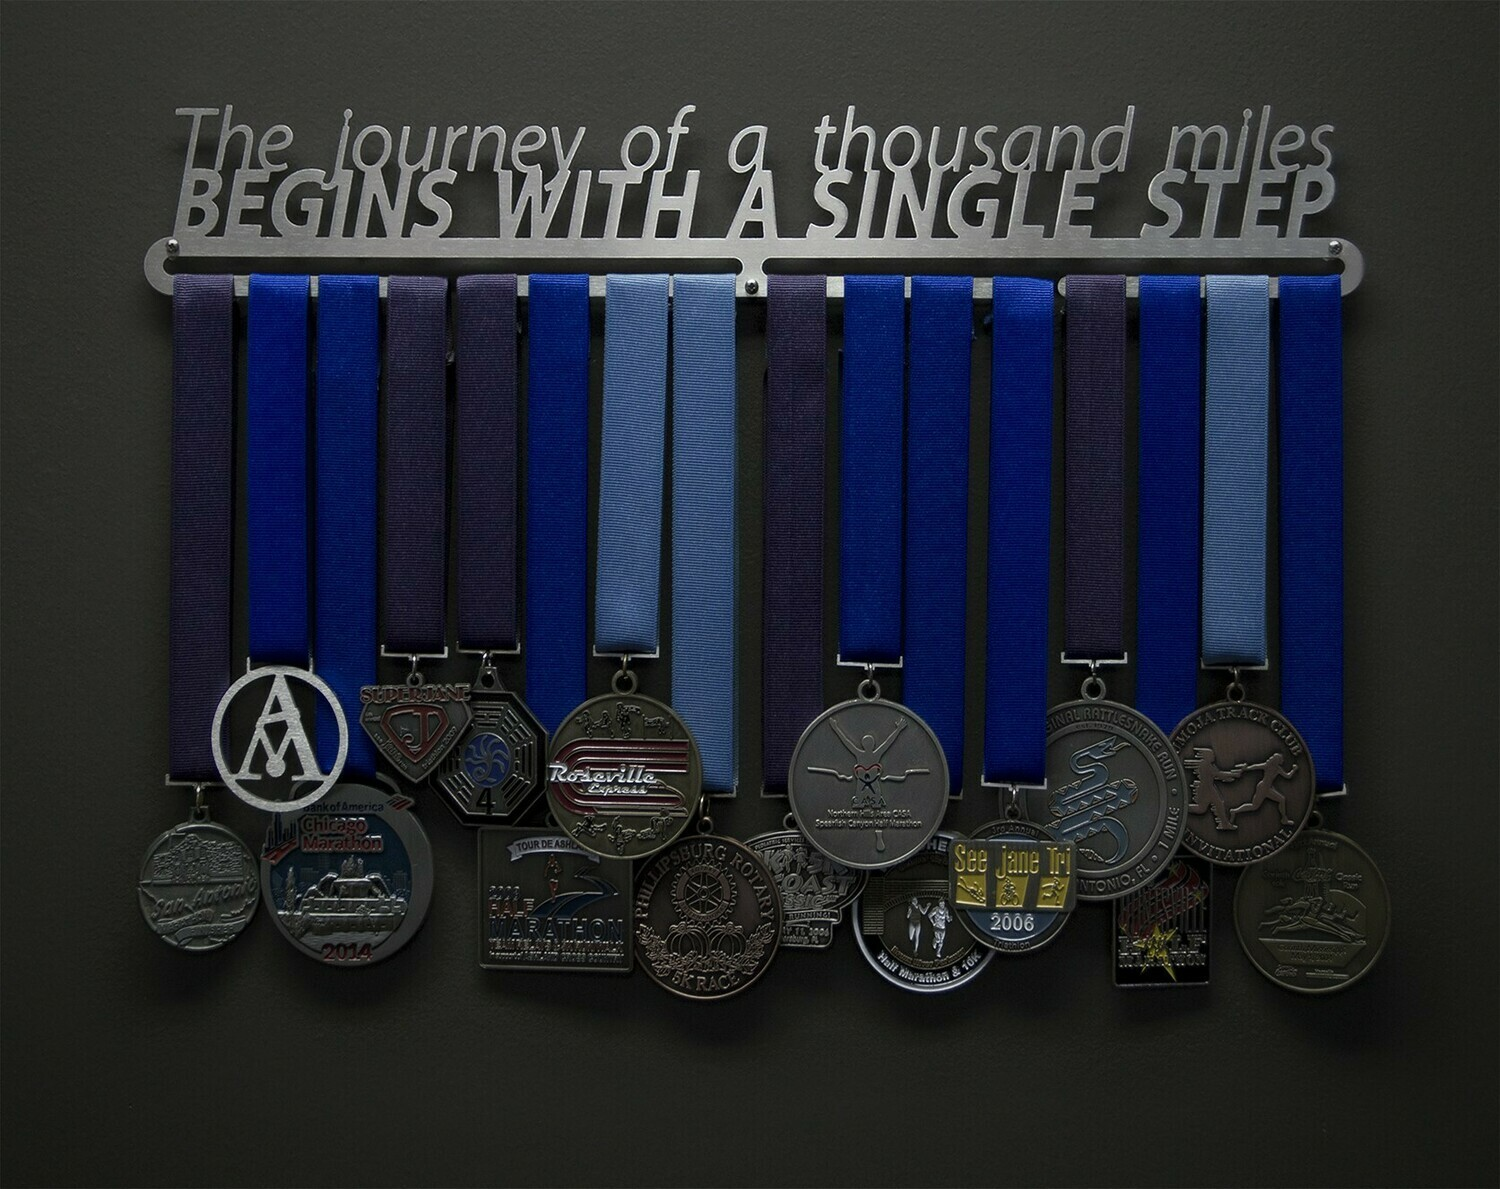 A journey of a thousand miles begins with one single step